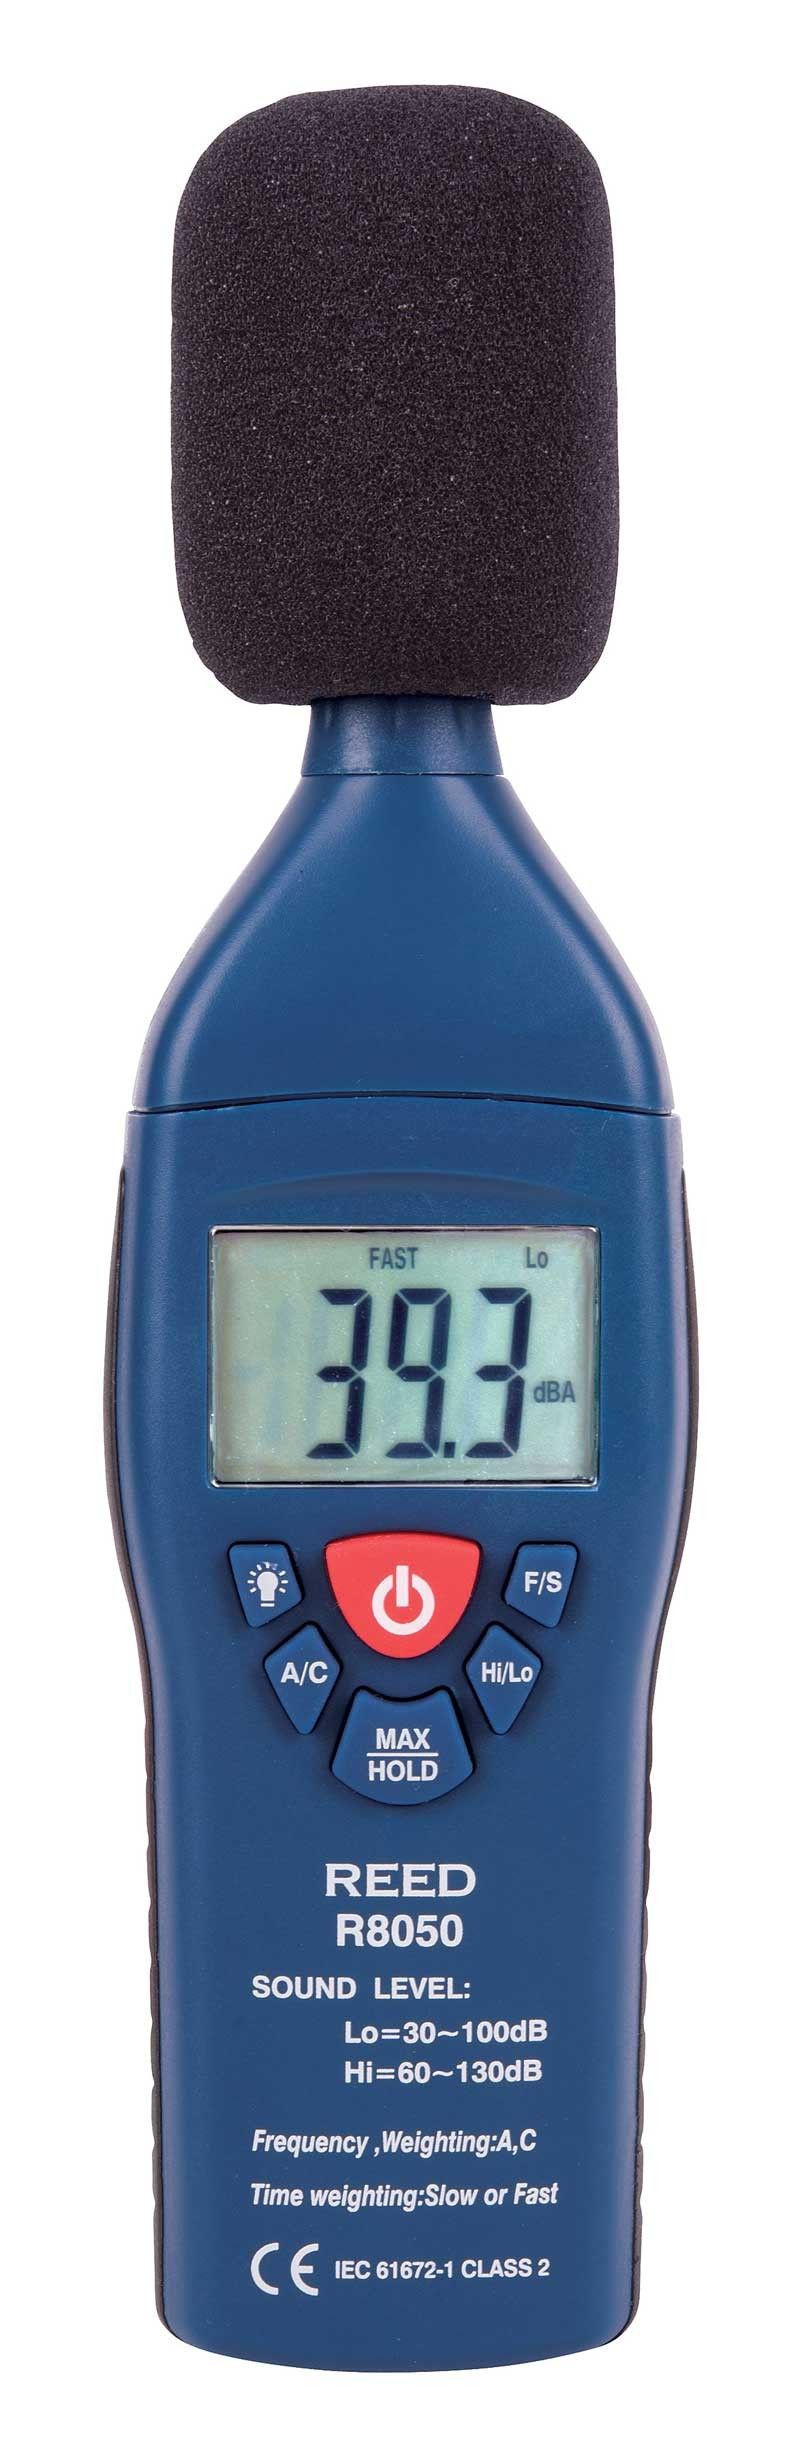 REED R8050 Sound Level Meter, Type 2, 30 to 130 dB-